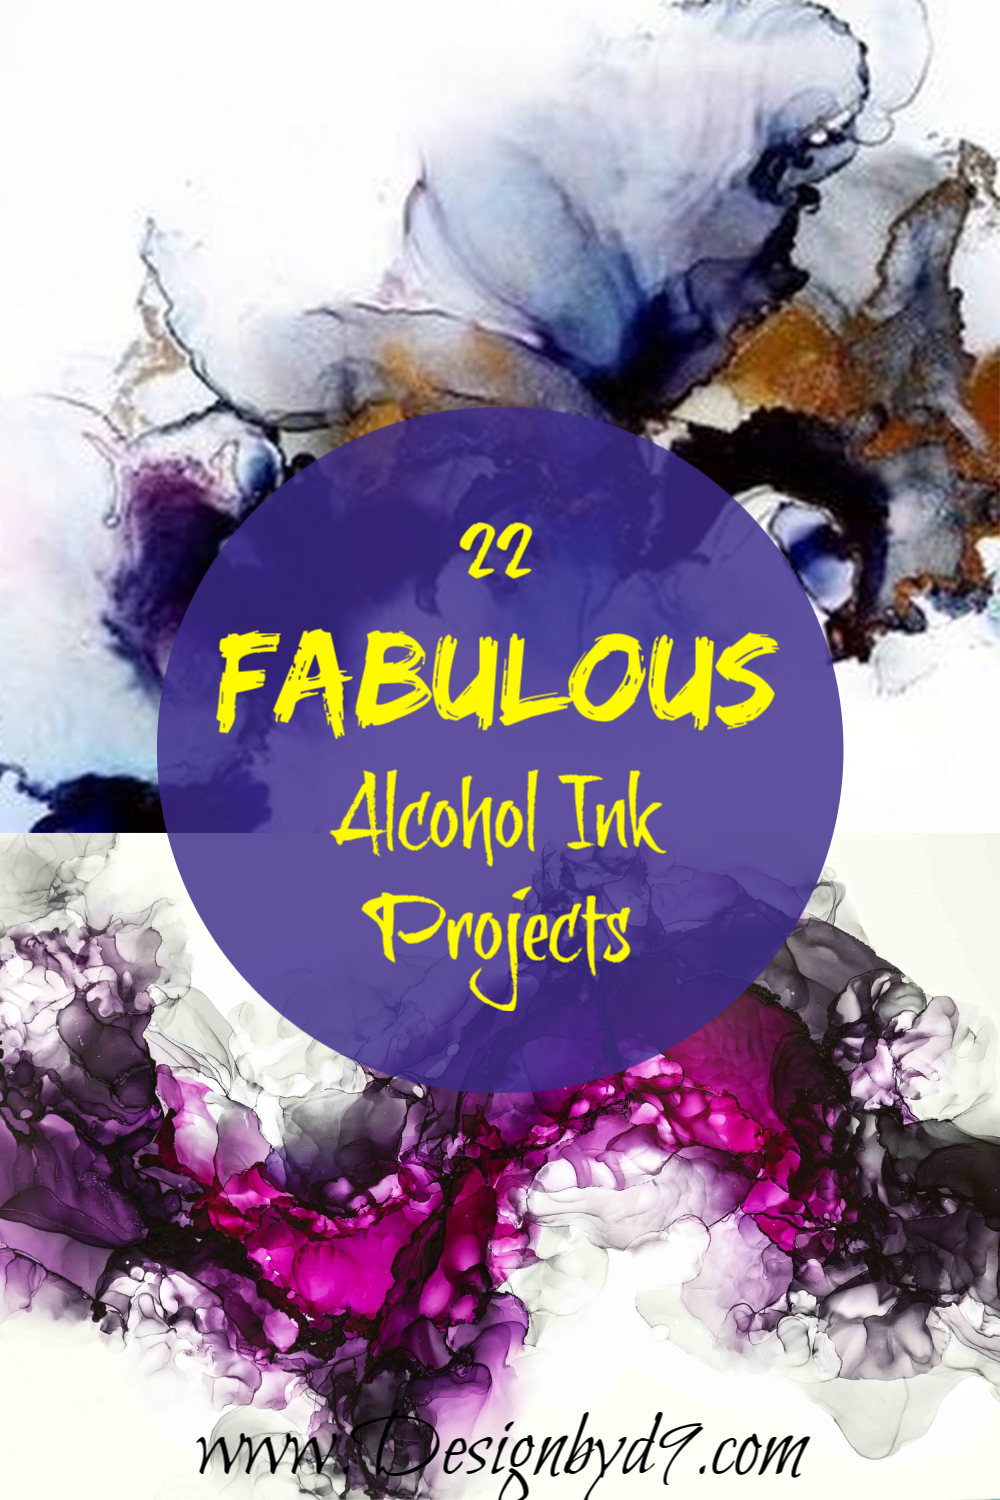 Alcohol Ink can give you patterns and designs that you can't get from other mediums. Whether you are using it on Yupo, glass, ceramic it always delivers an amazing finish.